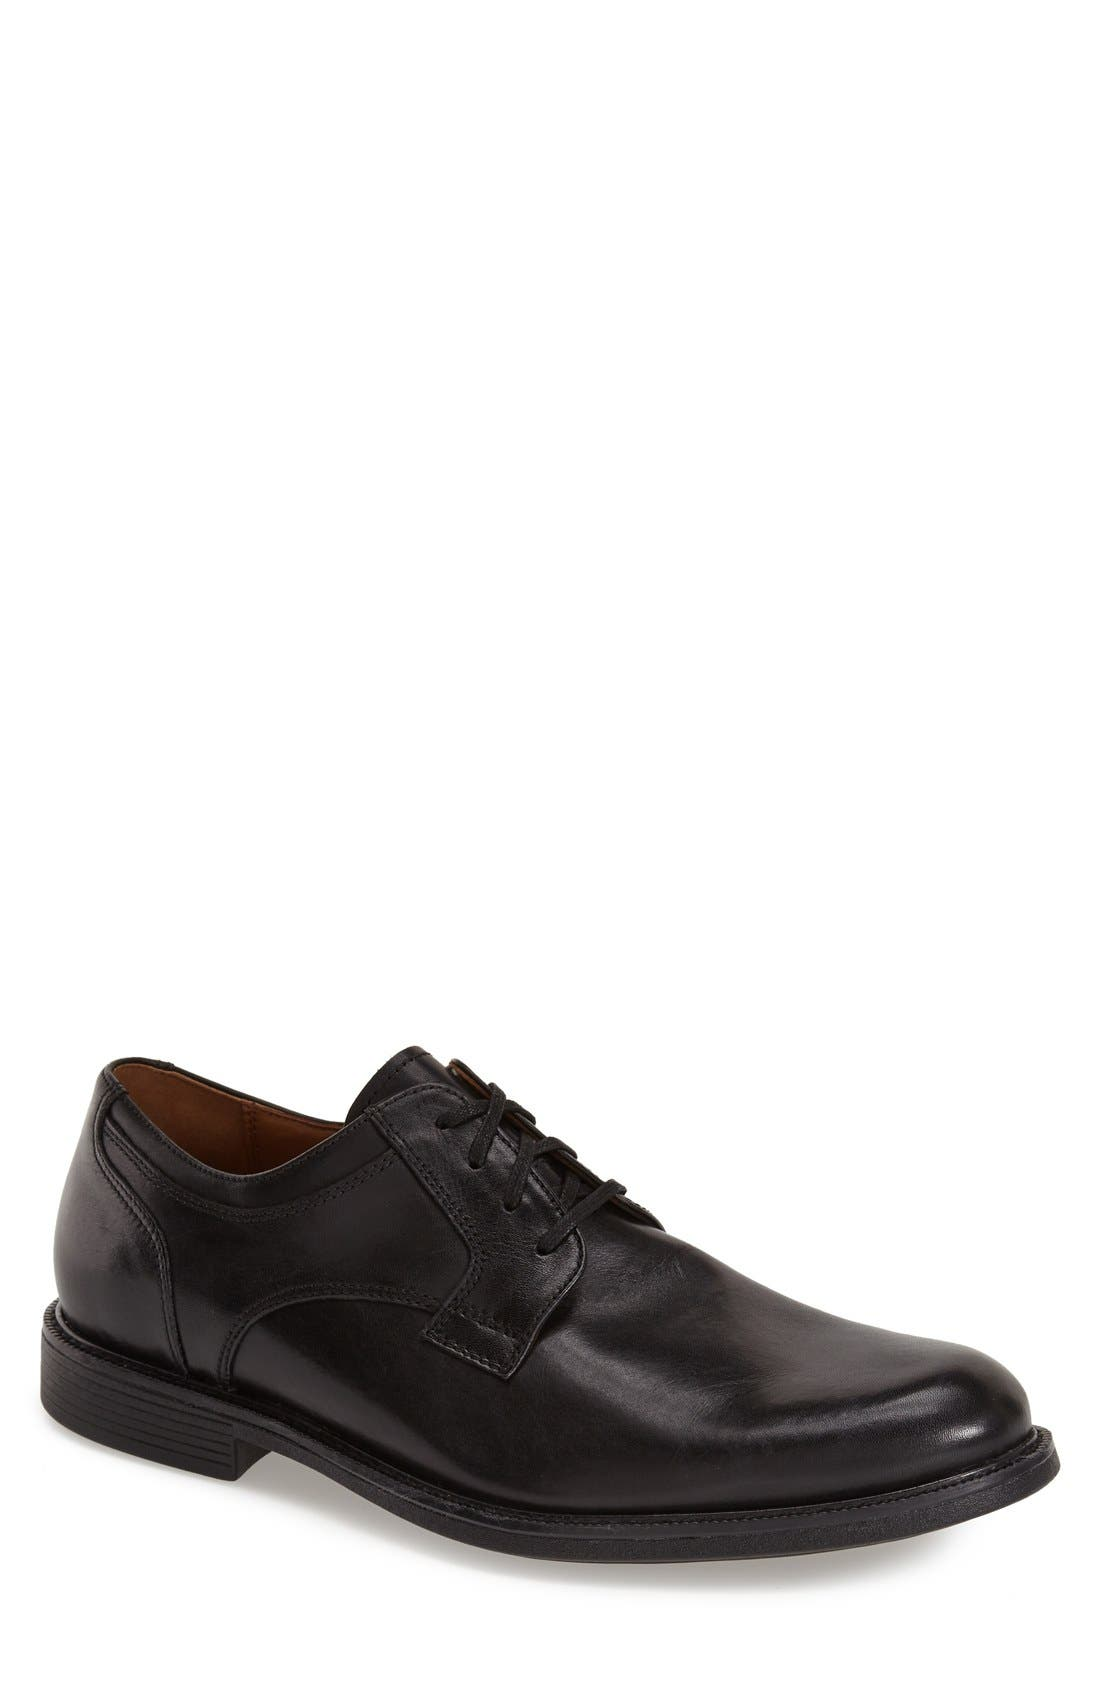 JOHNSTON & MURPHY 'Cardell' Plain Toe Derby